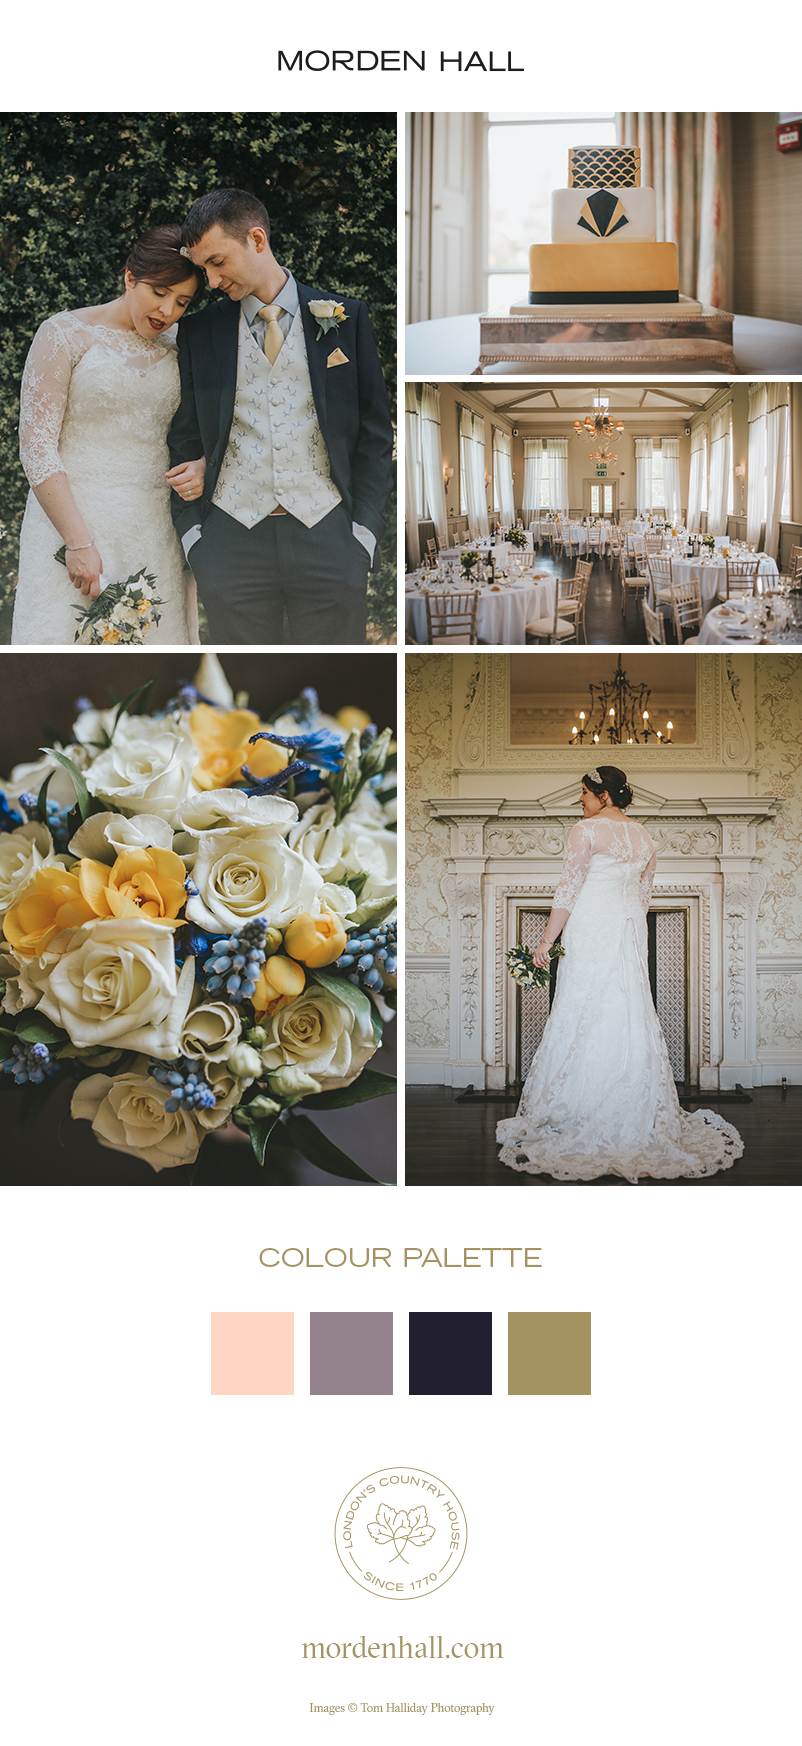 Be inspired by Ruth and Steven's wedding ideas